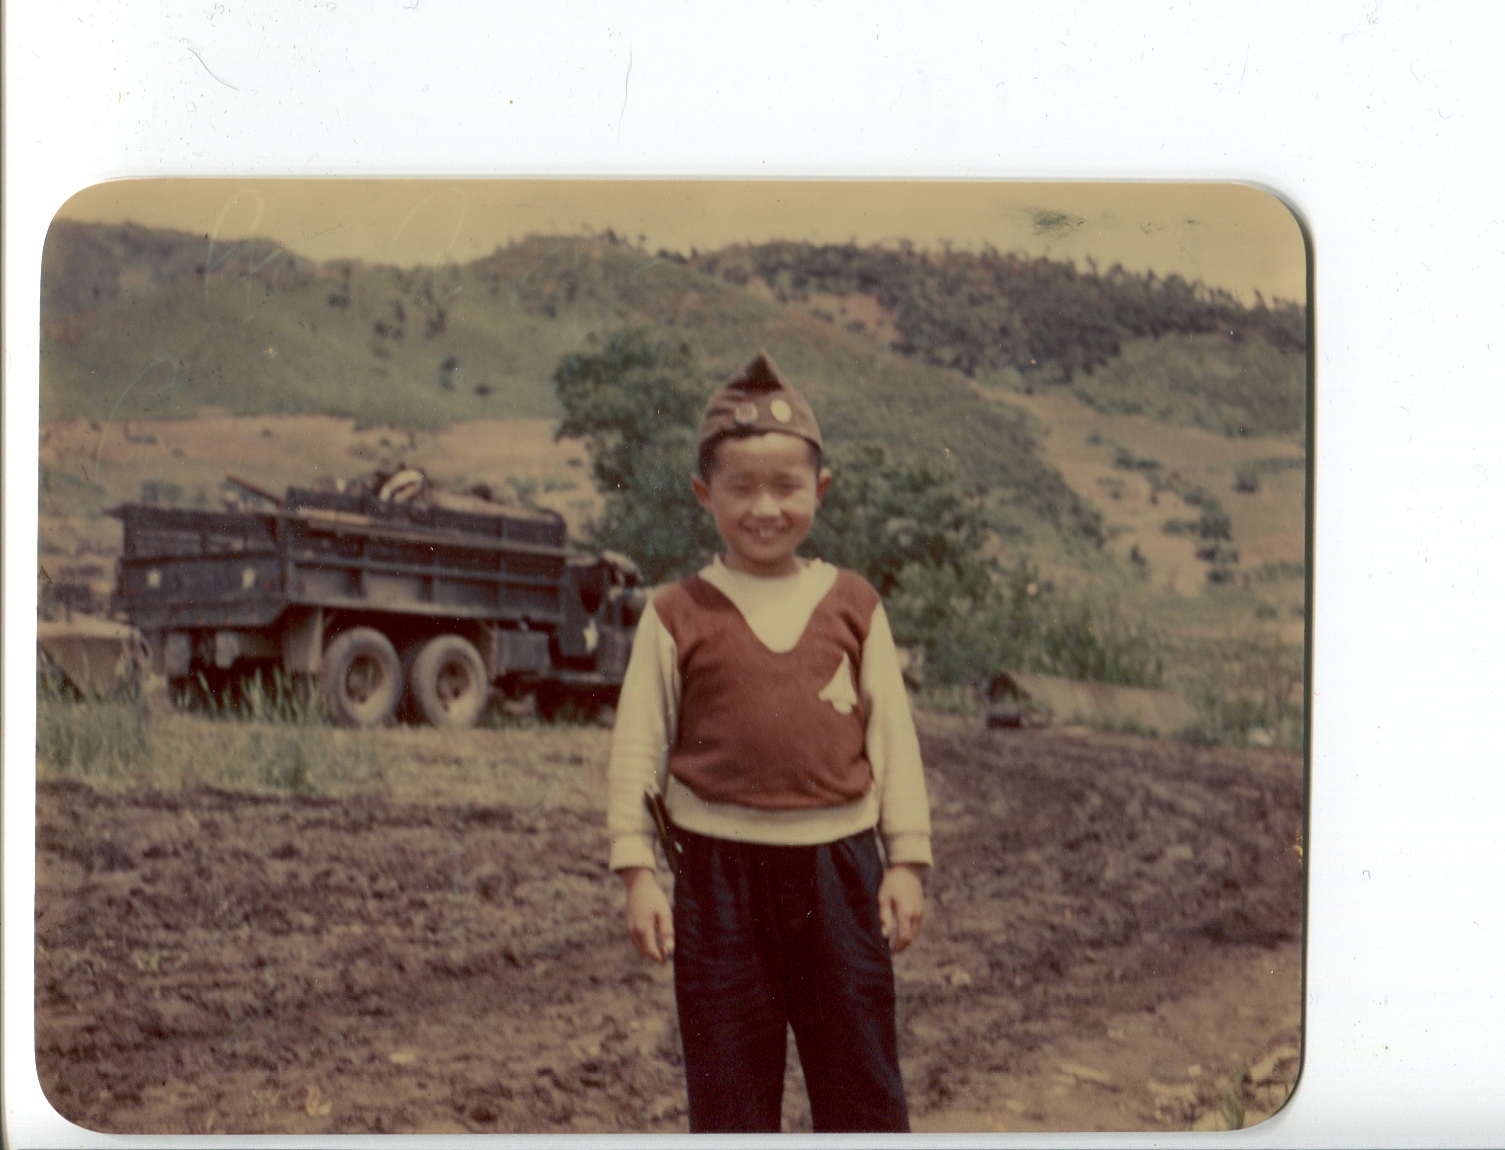 kron107 Kim Little S Korean boy who was